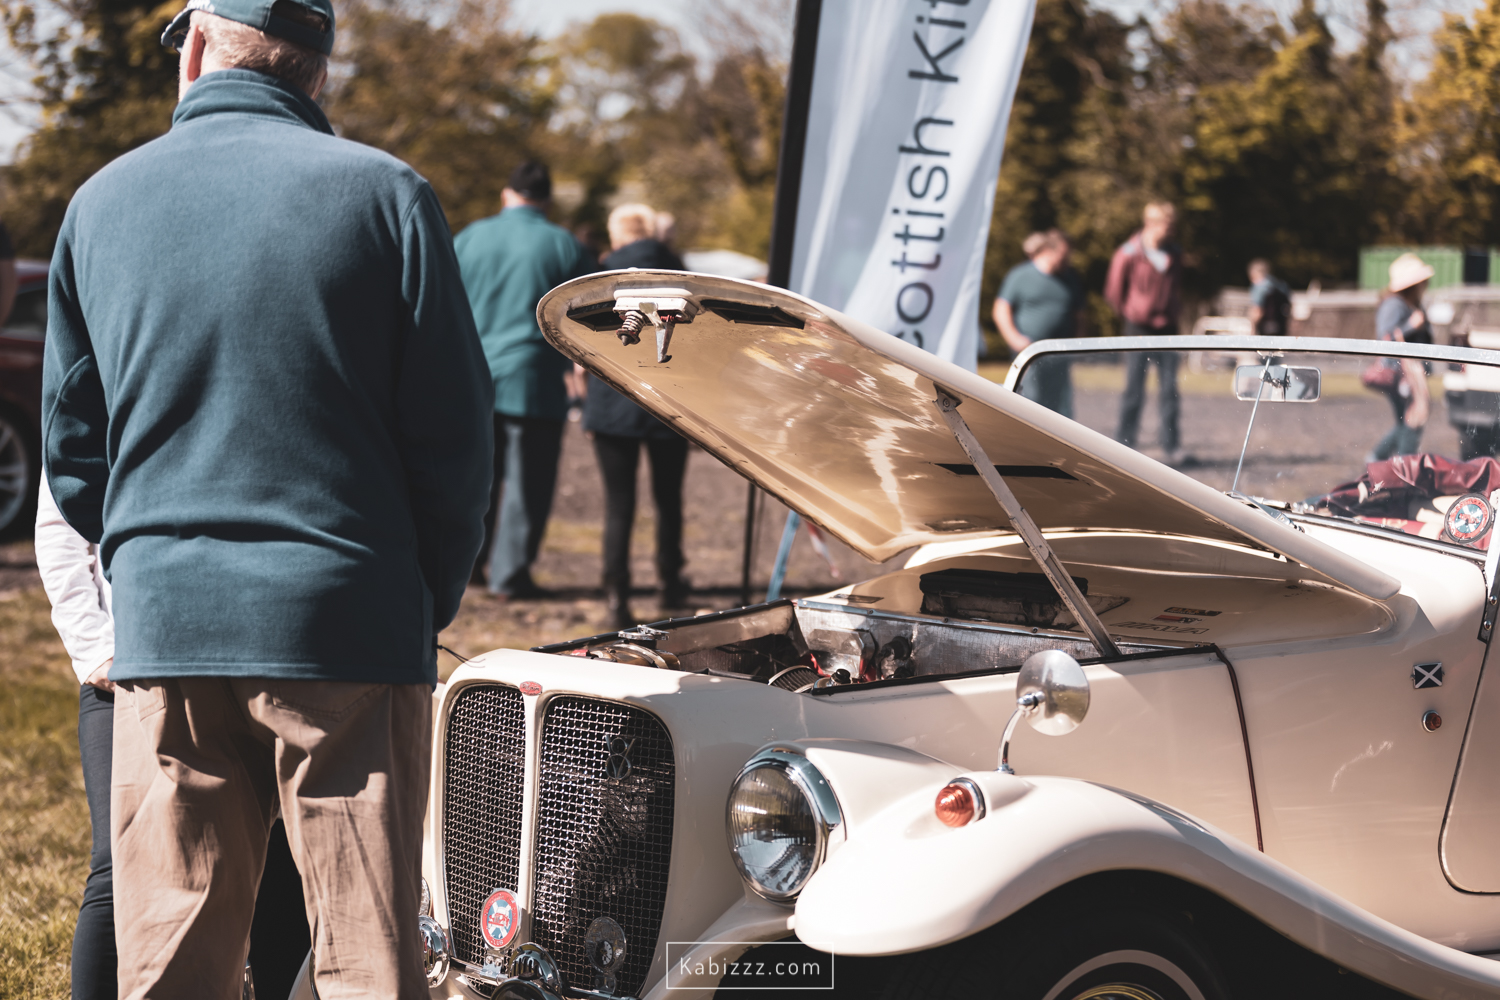 Kabizzz_Photography_Stirling_District_Classic _cars-12.jpg